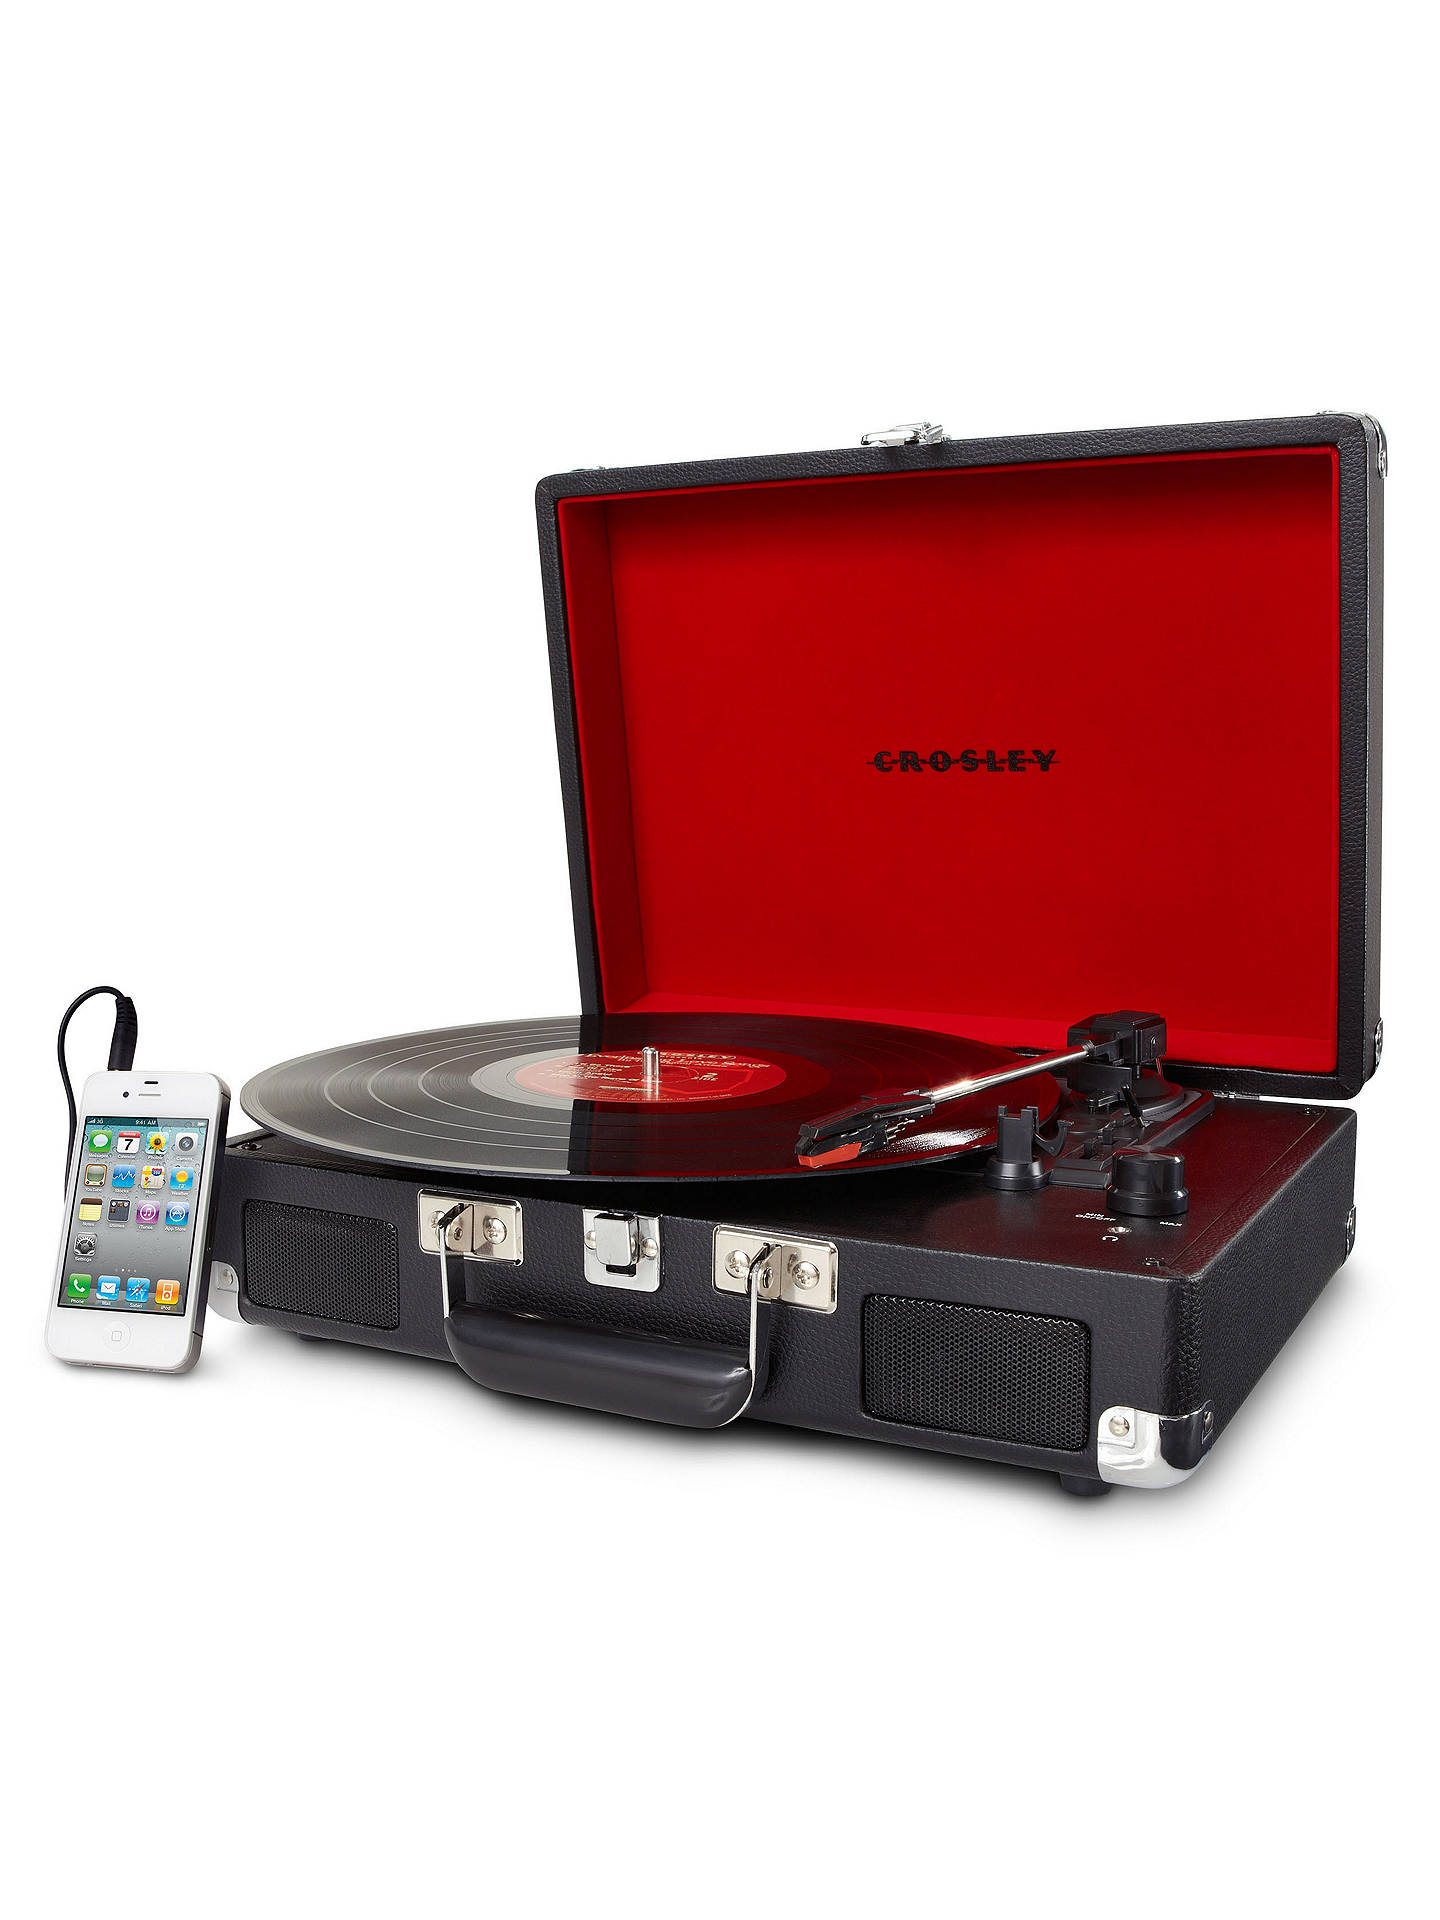 BuyCrosley Cruiser Turntable With Three Speeds, Black Online at johnlewis.com